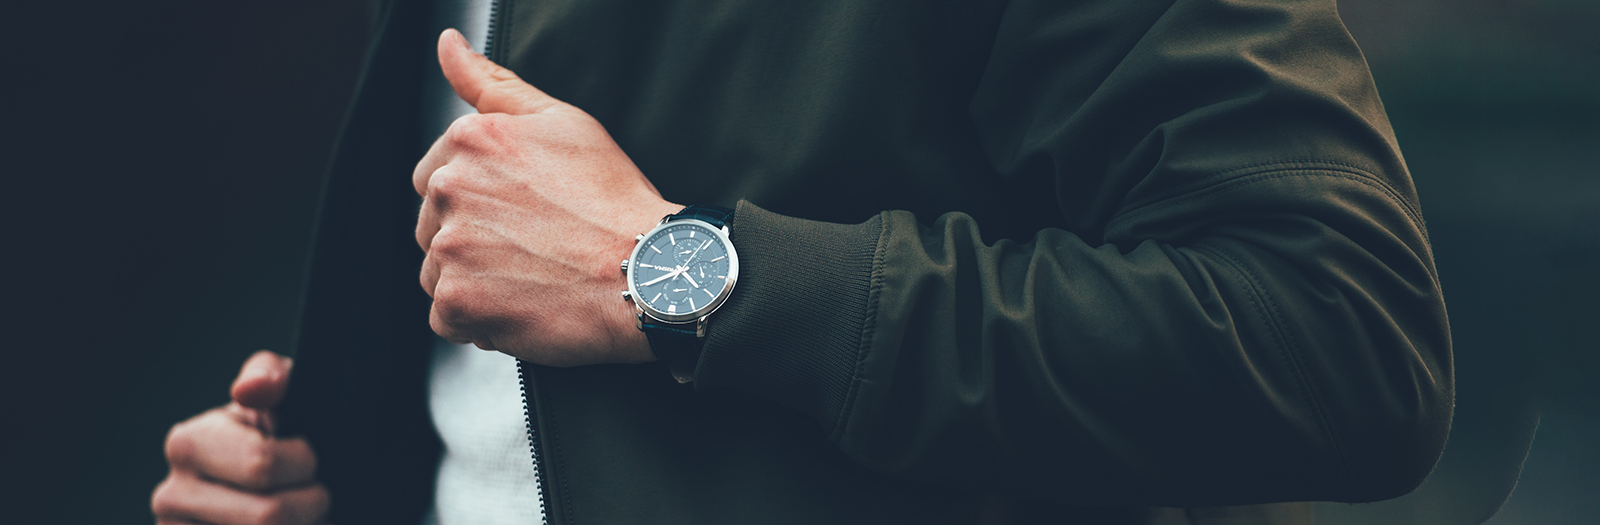 person wearing a watch